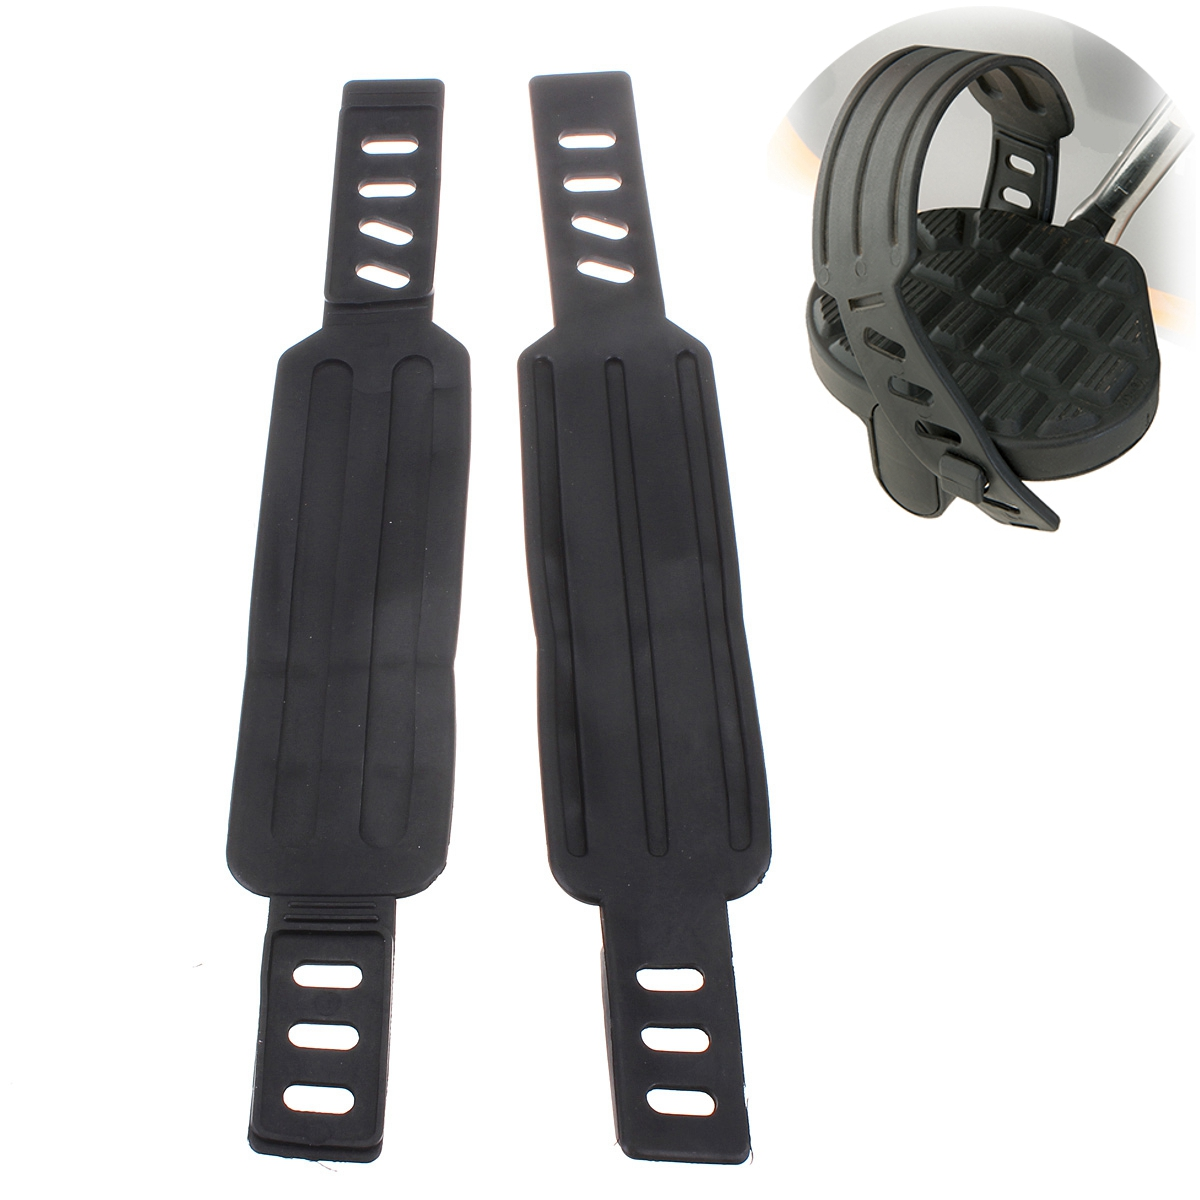 1 Pair Bicycle Cycling Pedal Straps Belts Fix Bands Tape Generic For Most Schwinn & More Stationary Fitness Exercise Bike 1 pair bicycle cycling pedal straps belts fix bands tape generic for most schwinn